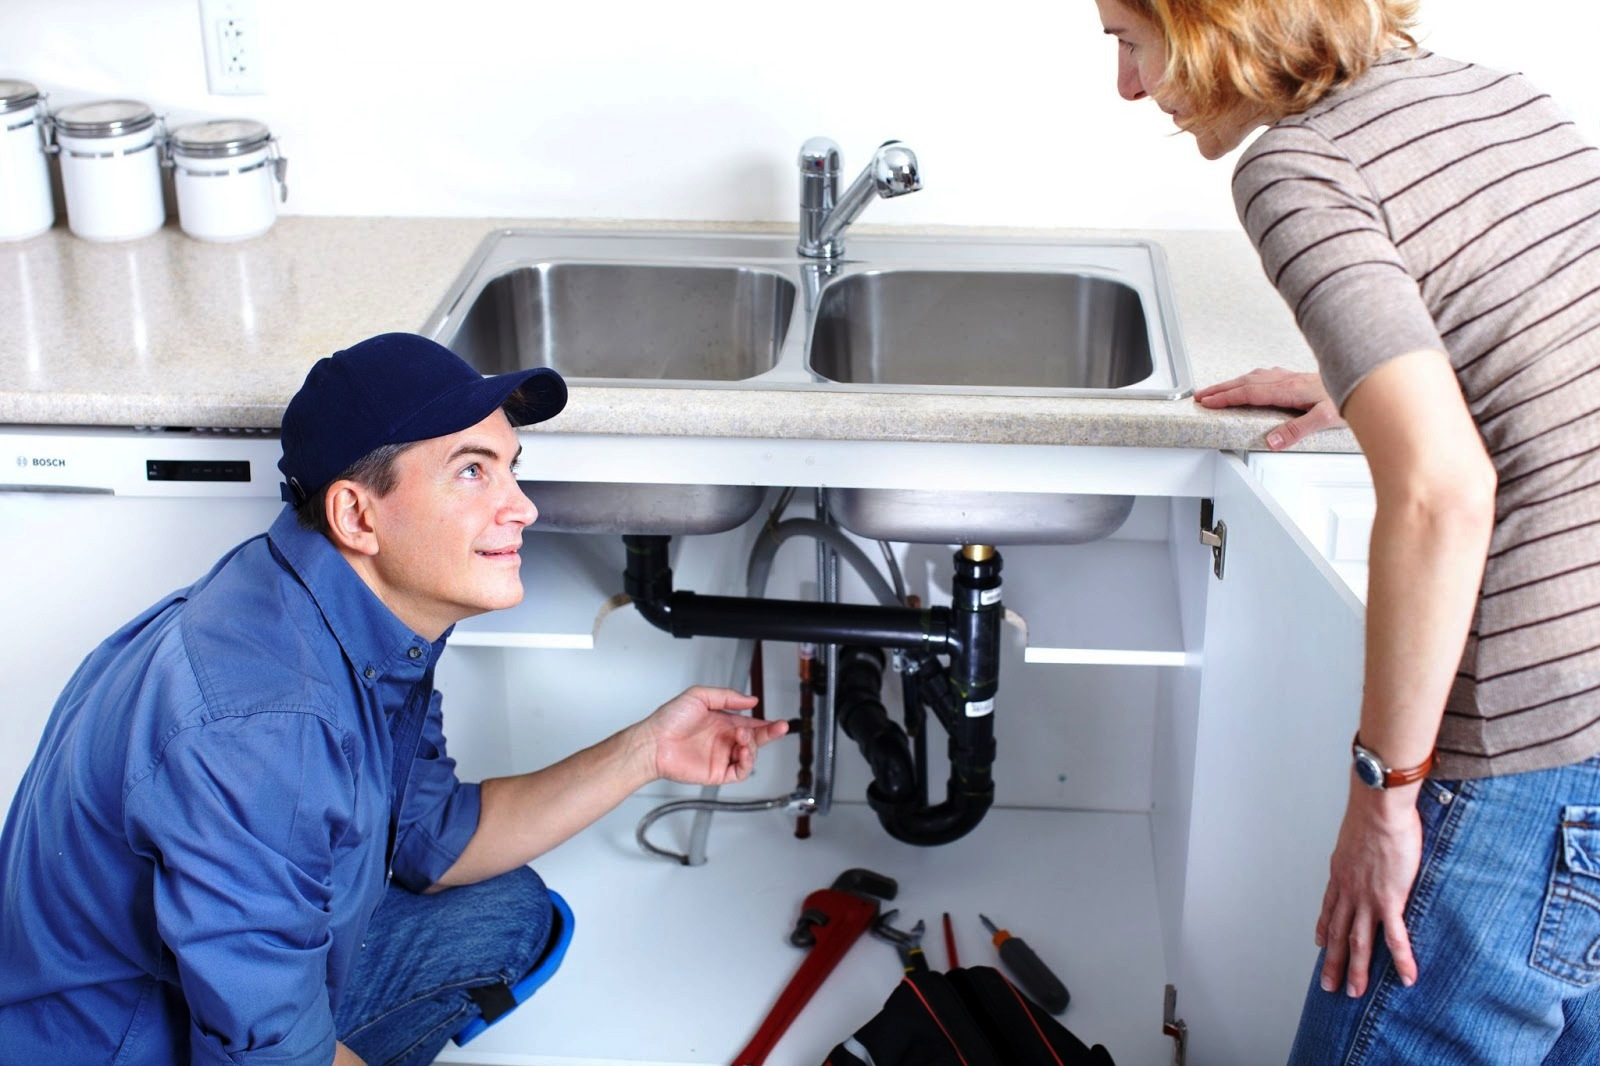 Things To Look For When Hiring A Plumber